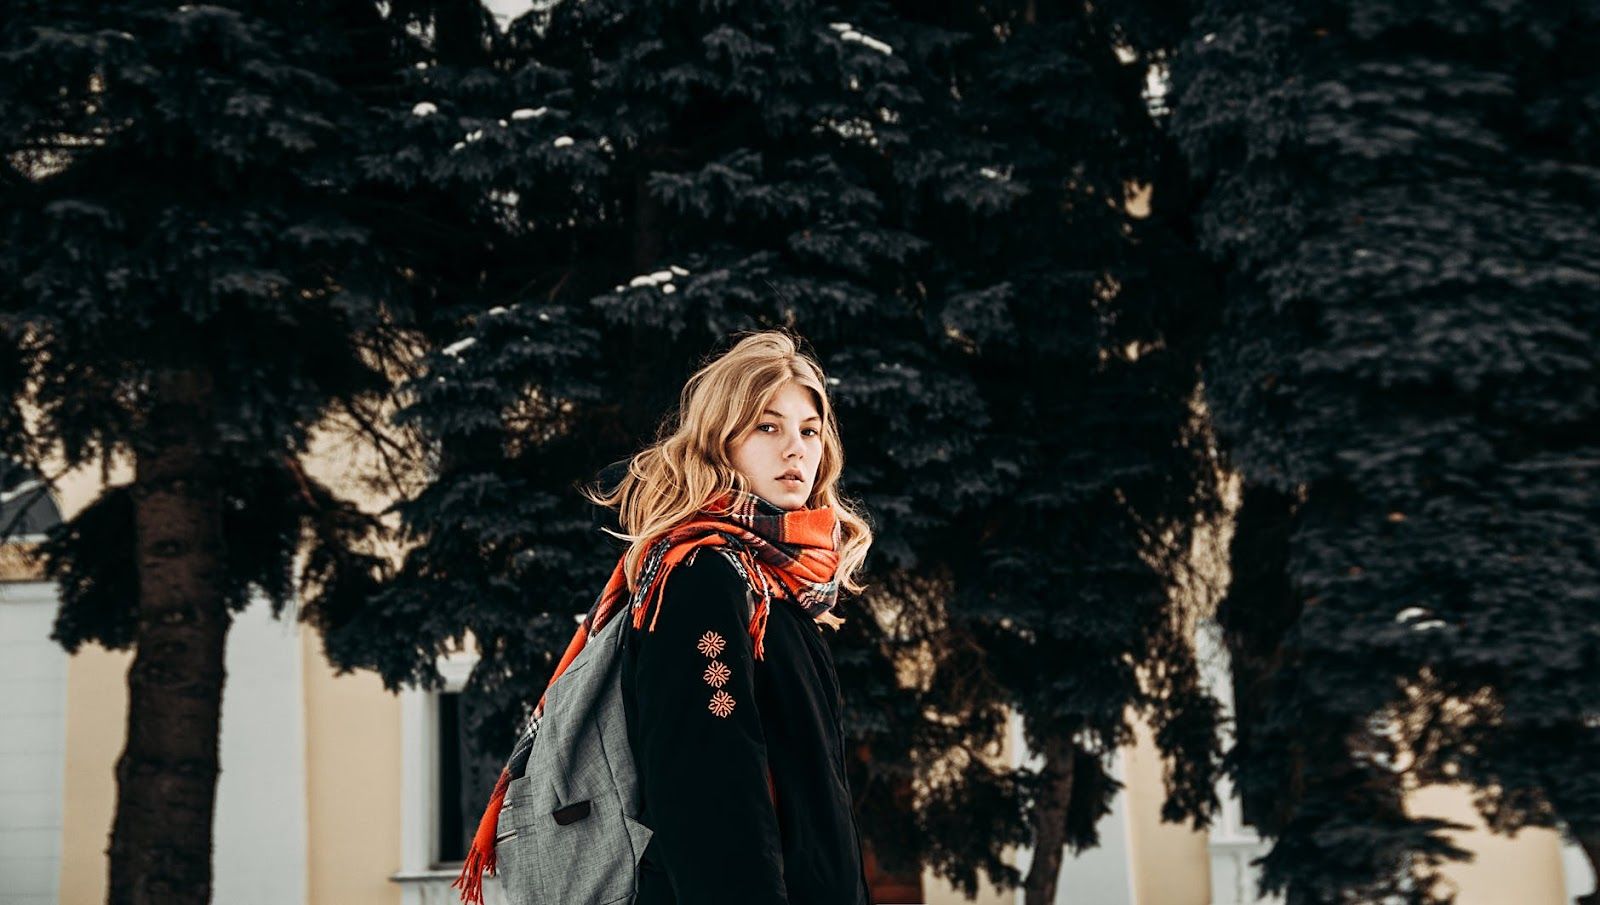 woman in big scarf and backpack looking at camera in trees